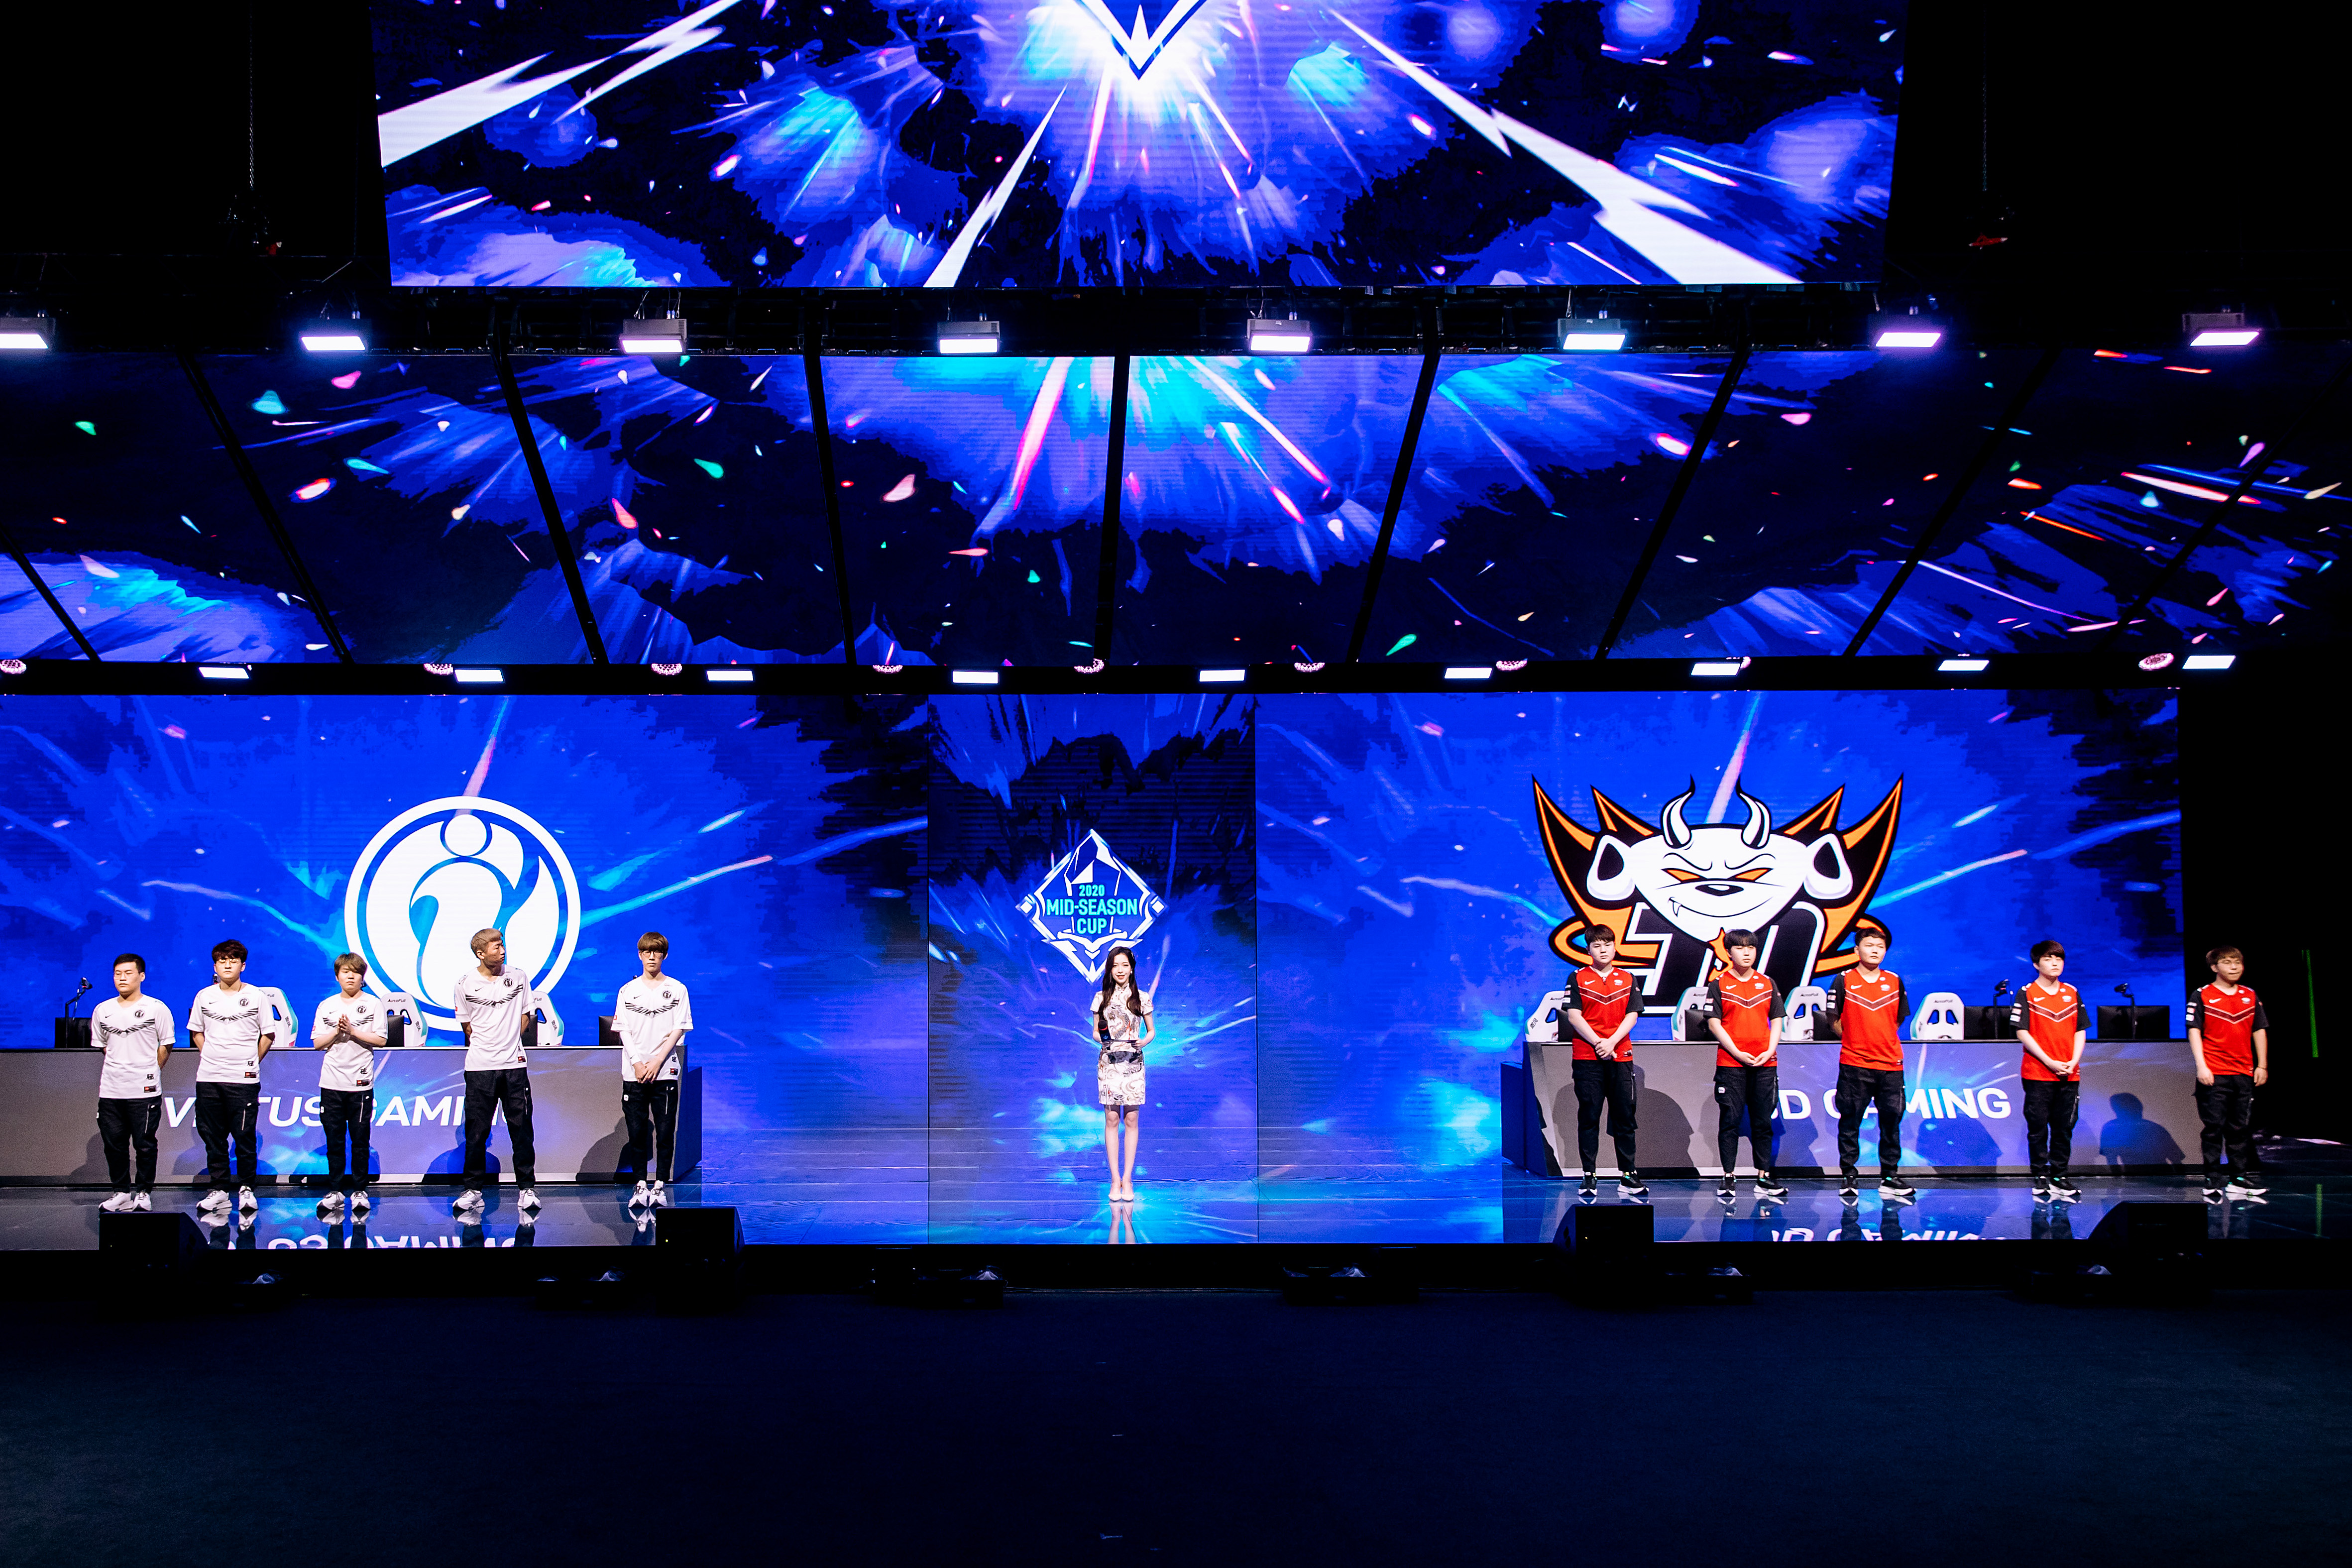 League of Legends Pro League teams Invictus Gaming (L) and JD Gaming (R) pose during the League of Legends Mid-Season Cup at the LPL Arena on May 29.